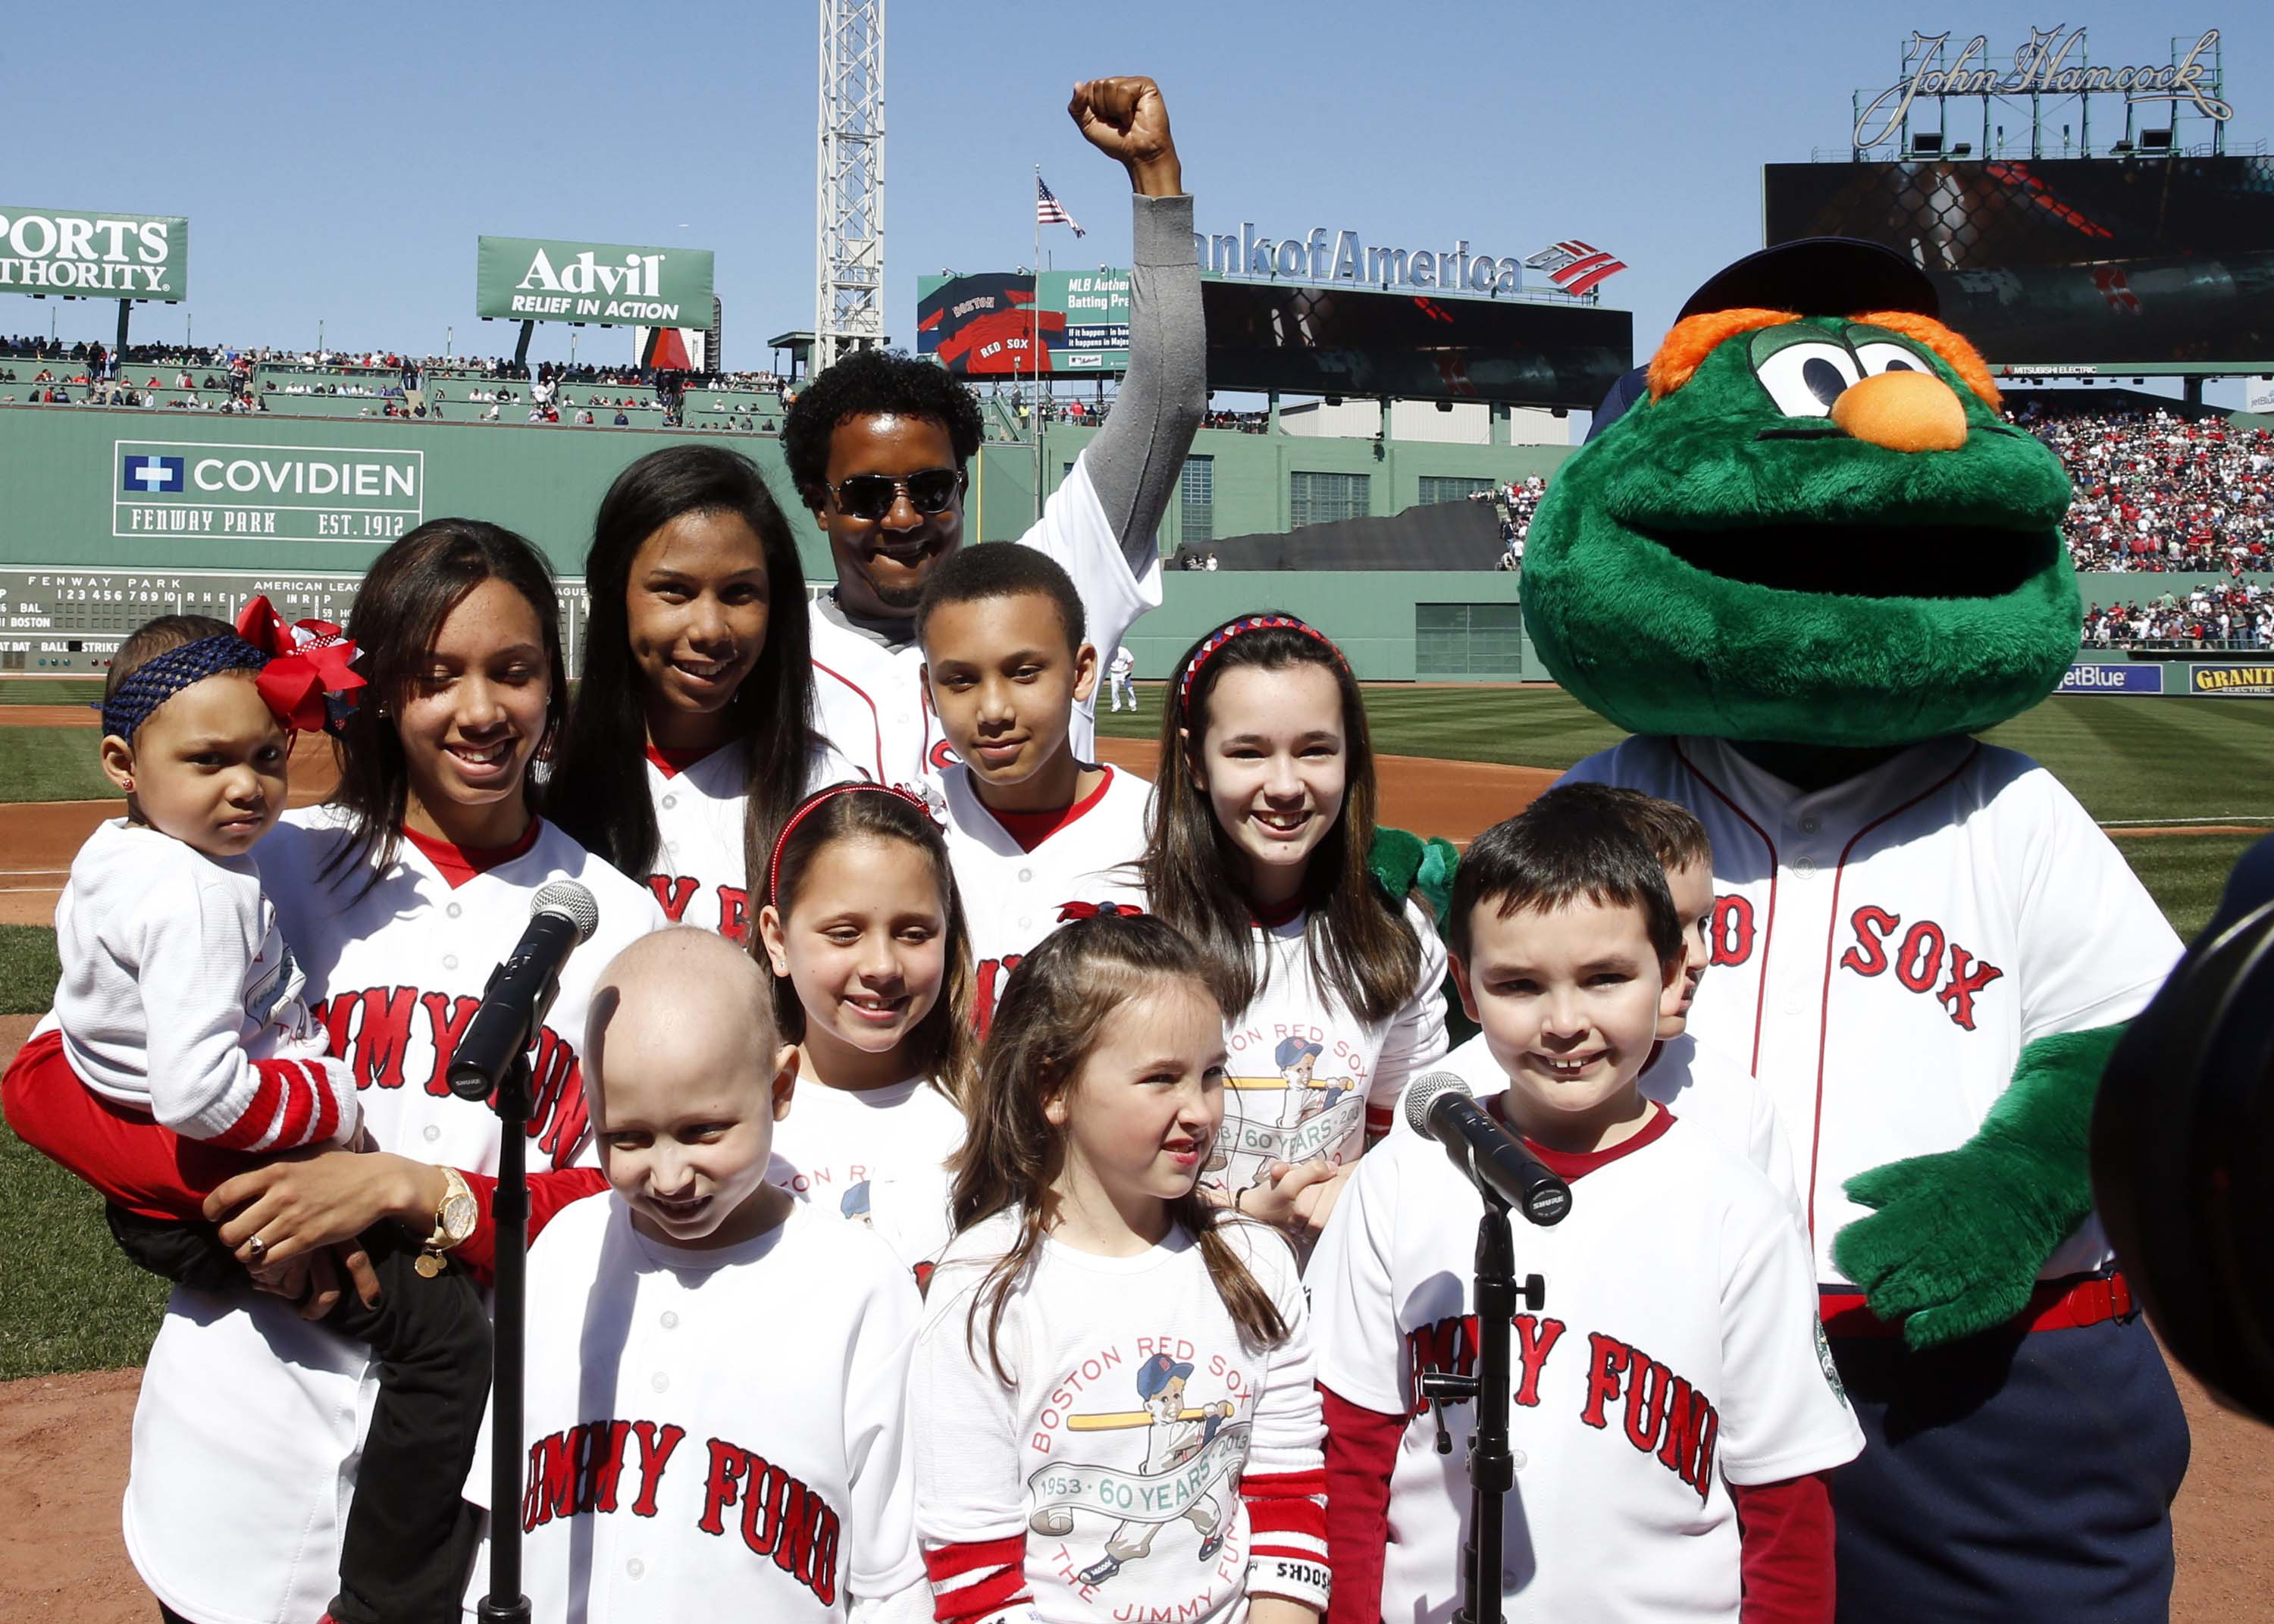 Former Red Sox pitcher Pedro Martinez takes pictures with fans before the start of opening day in April. (USAT)